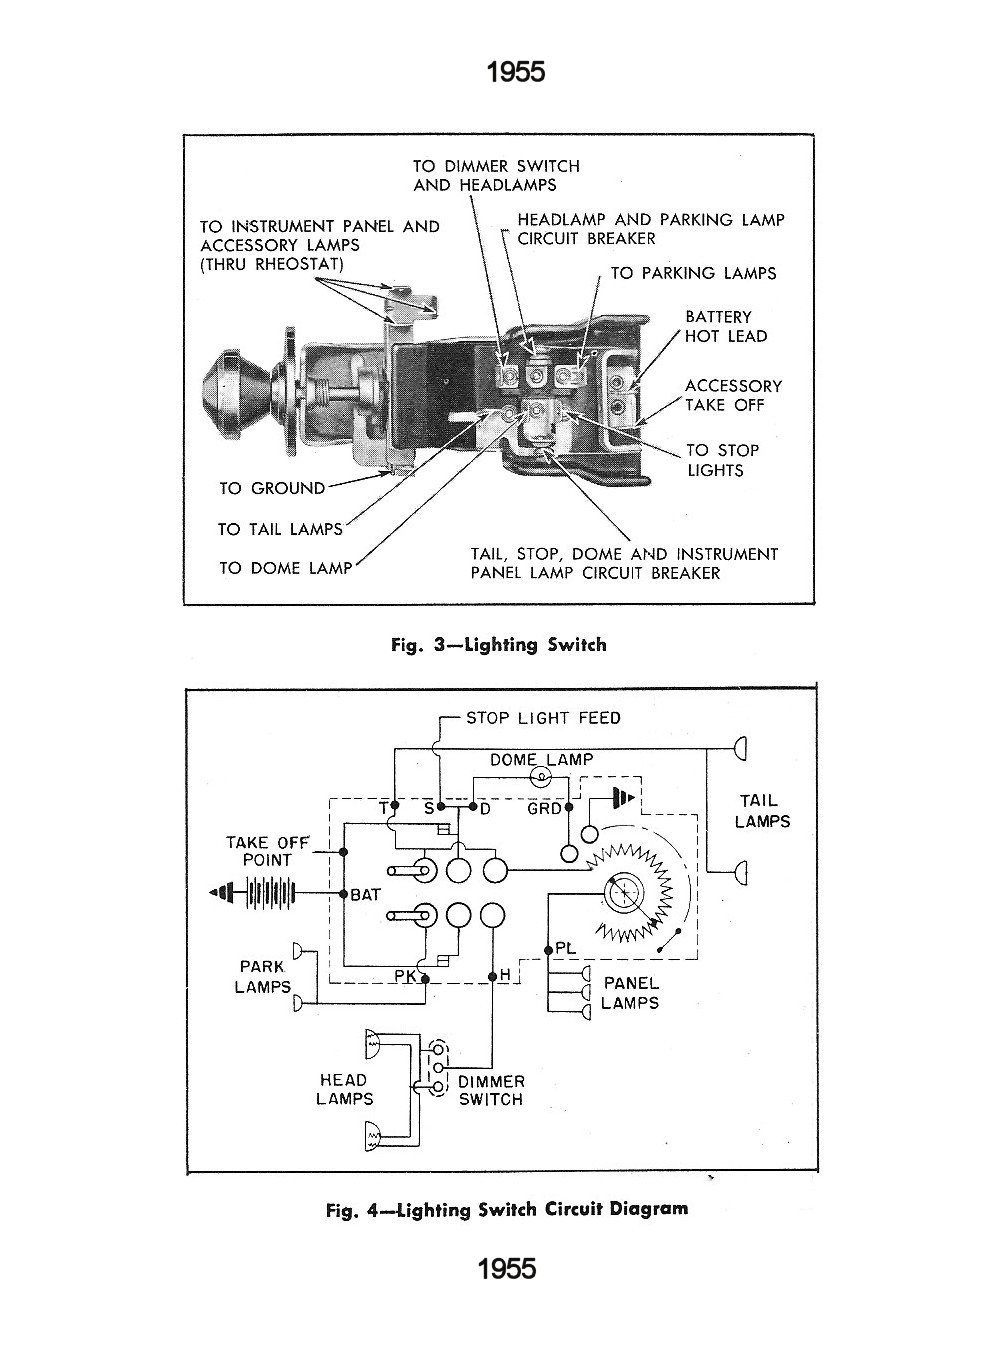 r 1955 chevy bel air ignition switch diagram motorcycle schematic r 1955 chevy bel air ignition switch diagram chevy wiring diagrams r 1955 chevy